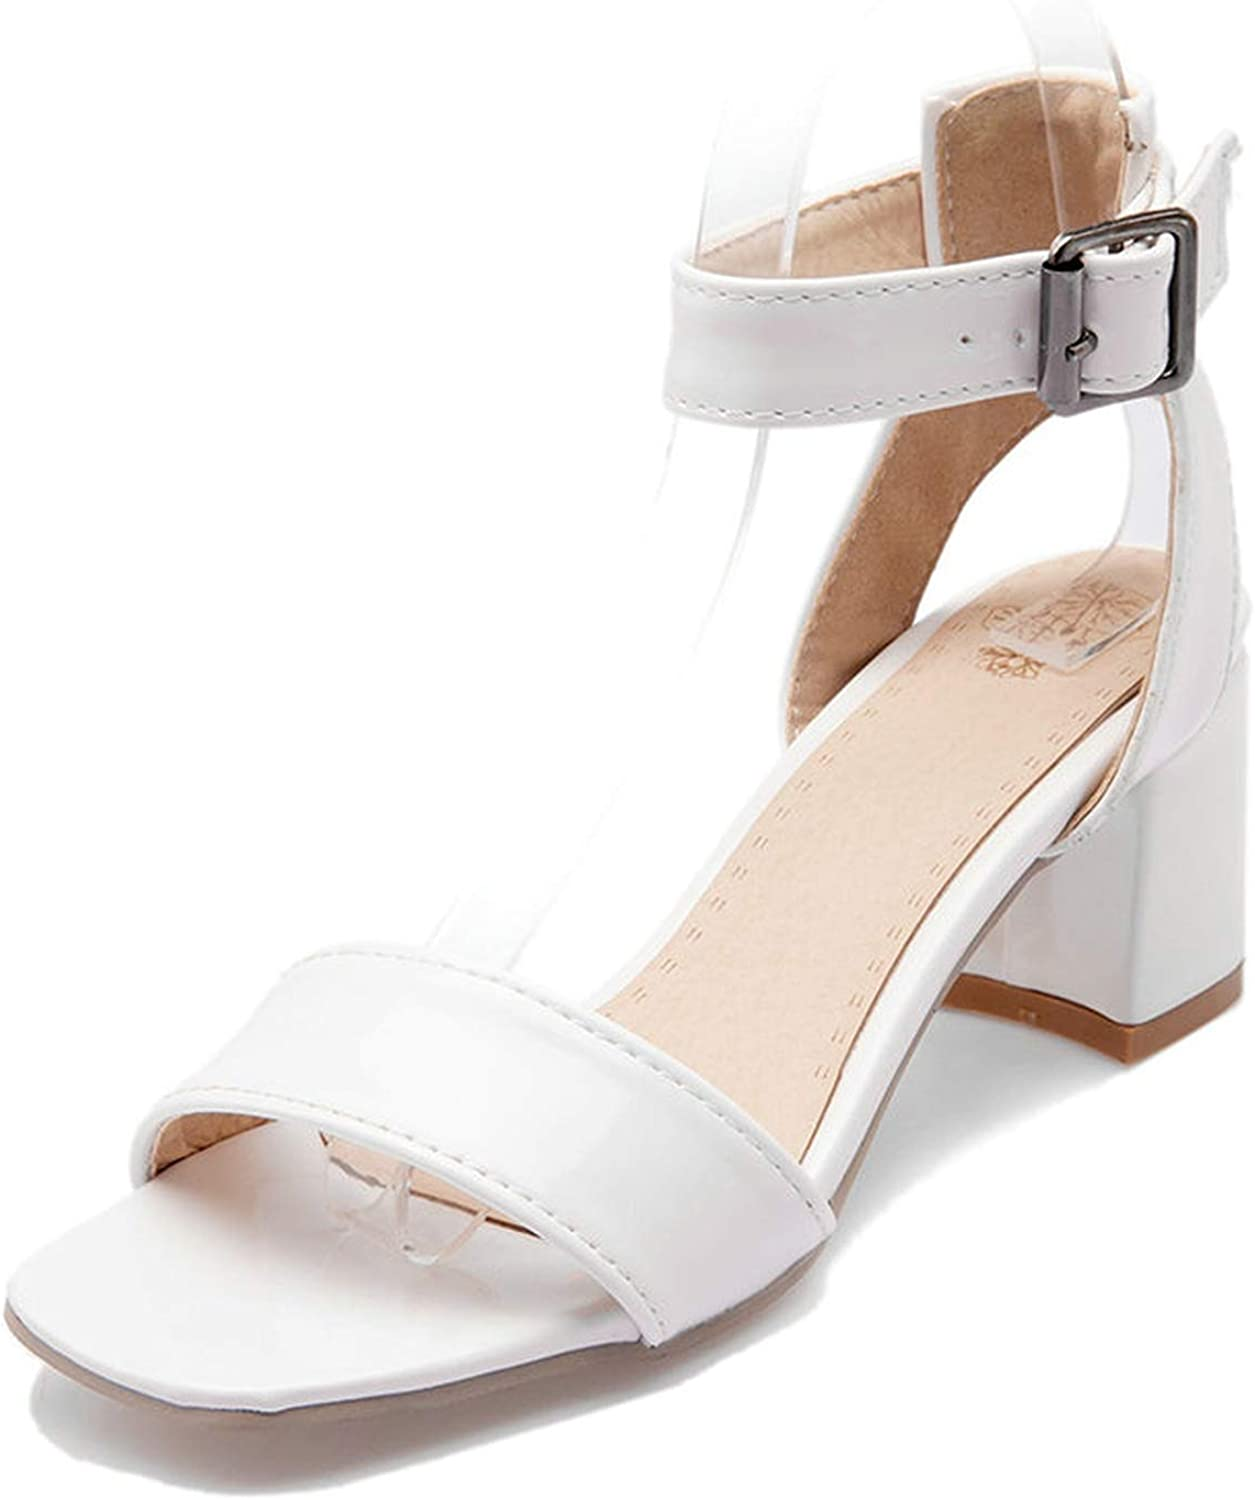 Mo Duo New Women Sandals high Heels Sandals Woman Casual shoes Woman Summer Ladies shoes